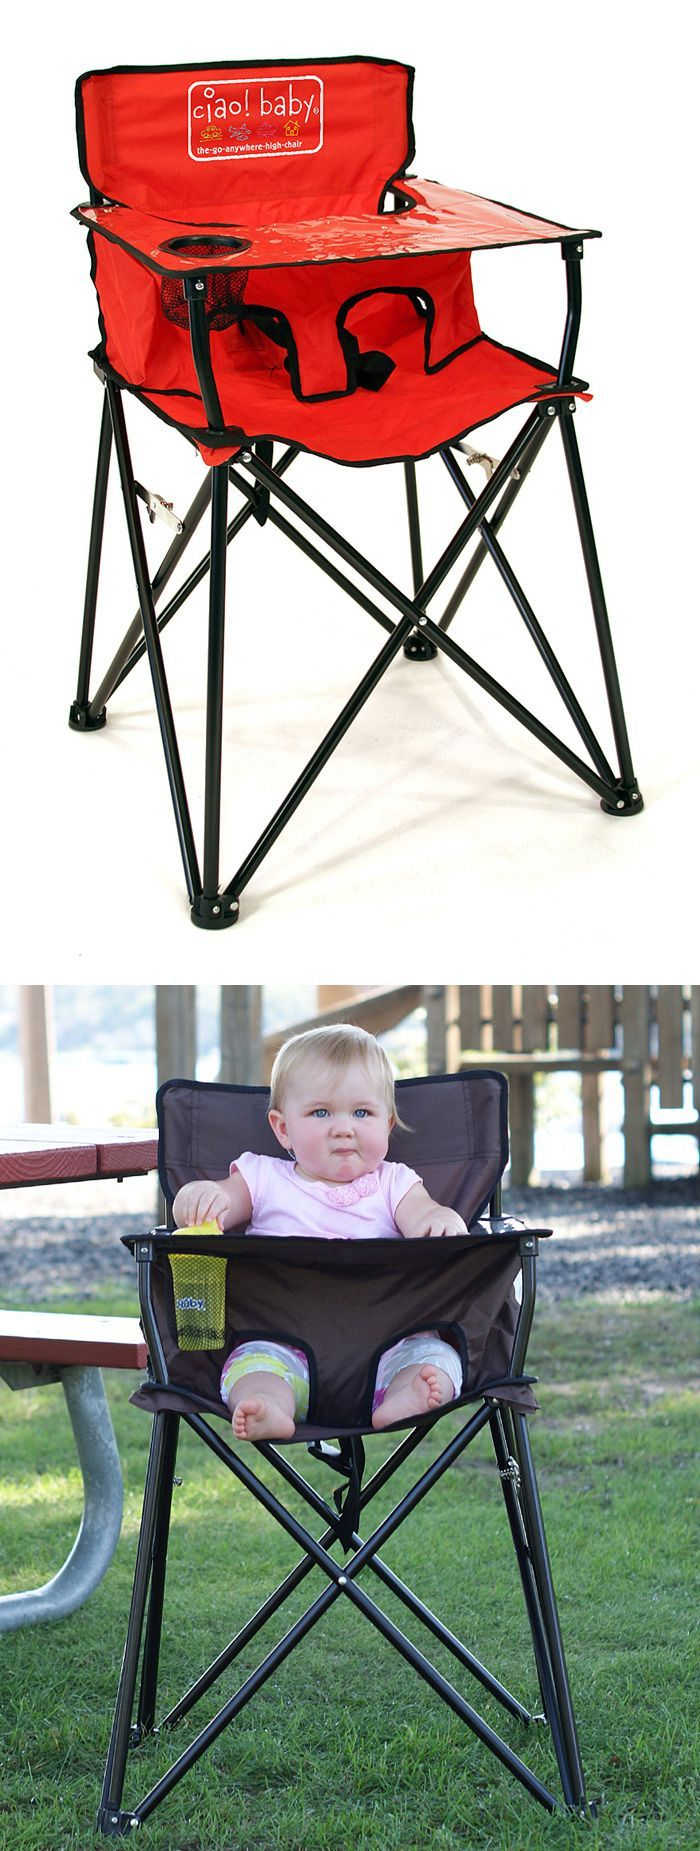 Baby Portable Travel High Chair - Folds up into a carrying bag just like a camp chair! Perfect for the park, camping, restaurants, travel, etc.